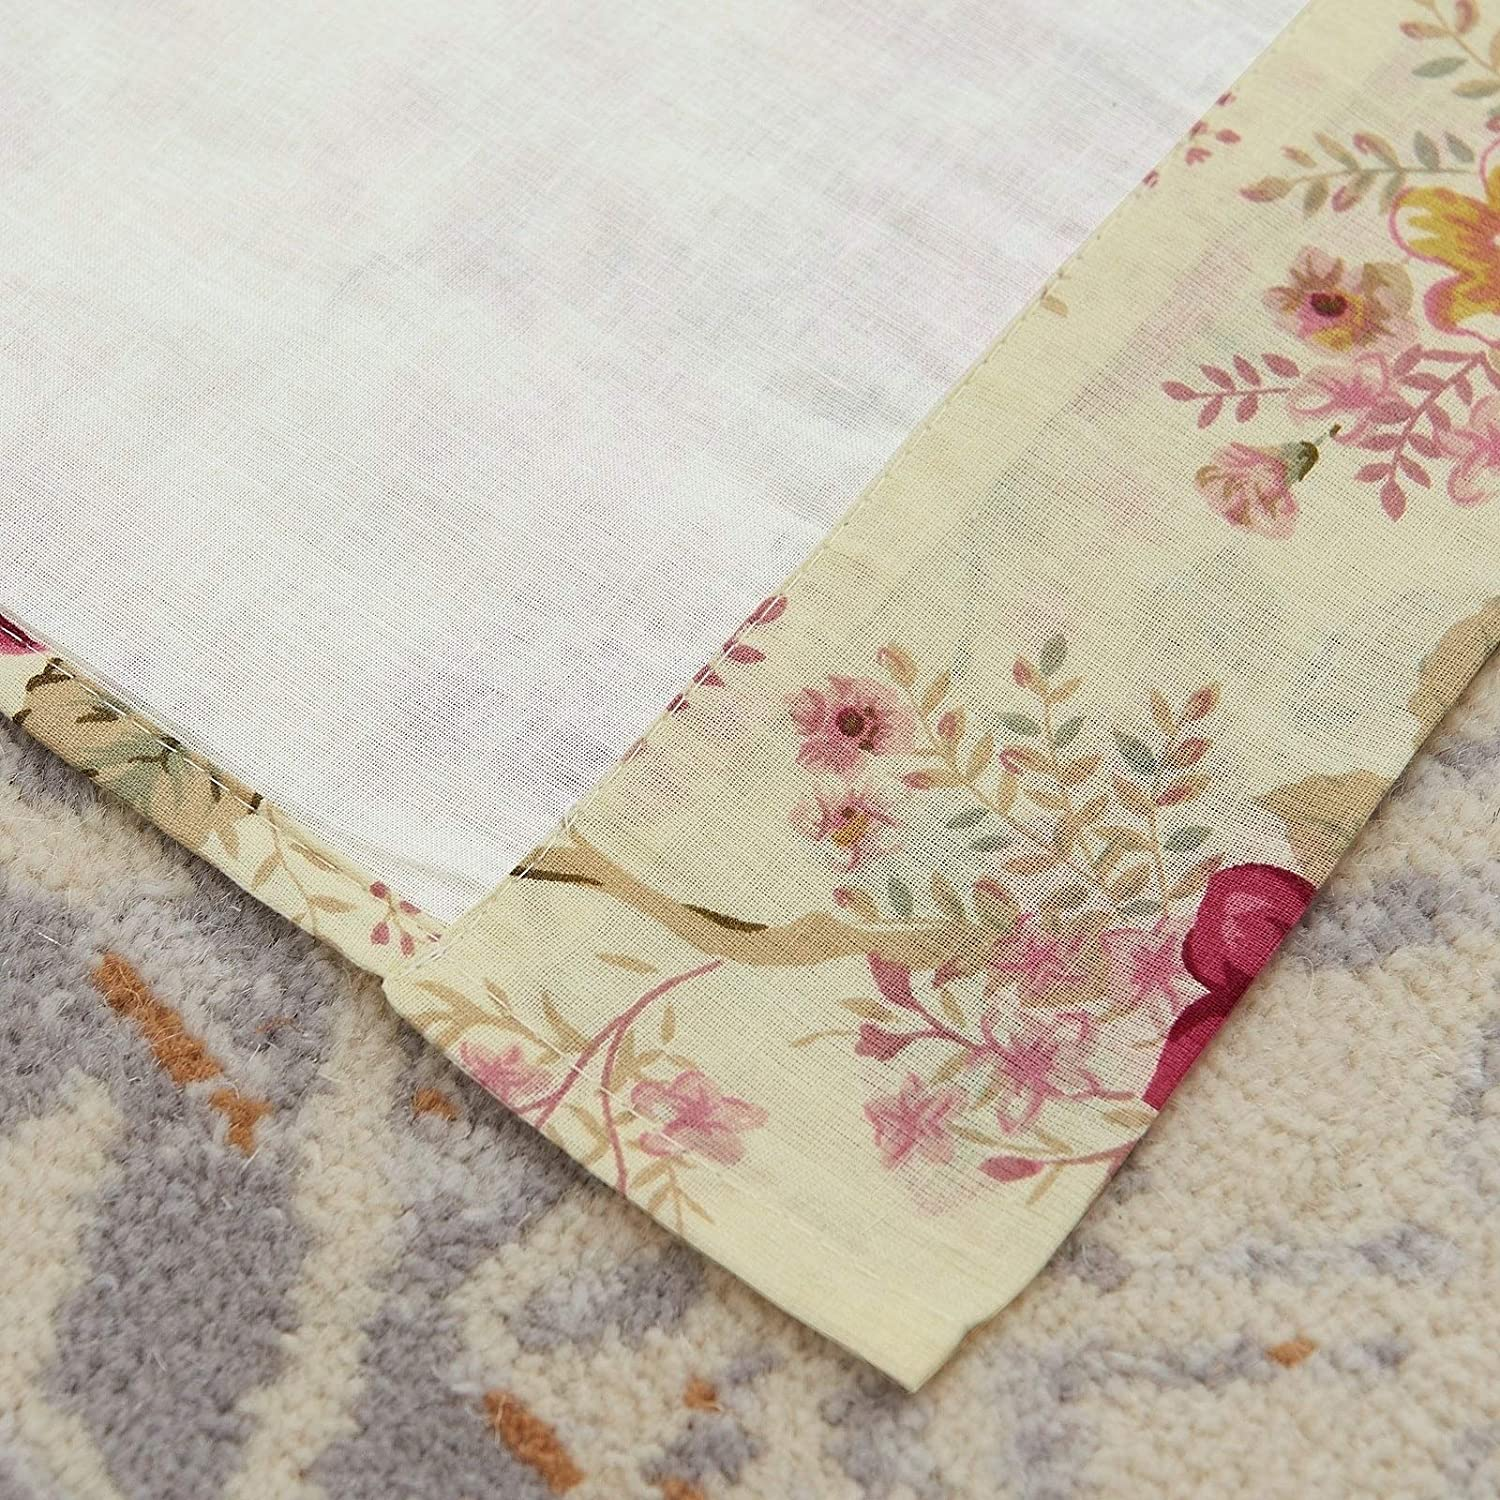 Antique Rose 84 inch Curtain Panel Pair Beige Gold Red Floral Farmhouse Shabby Chic Traditional Cotton Lined